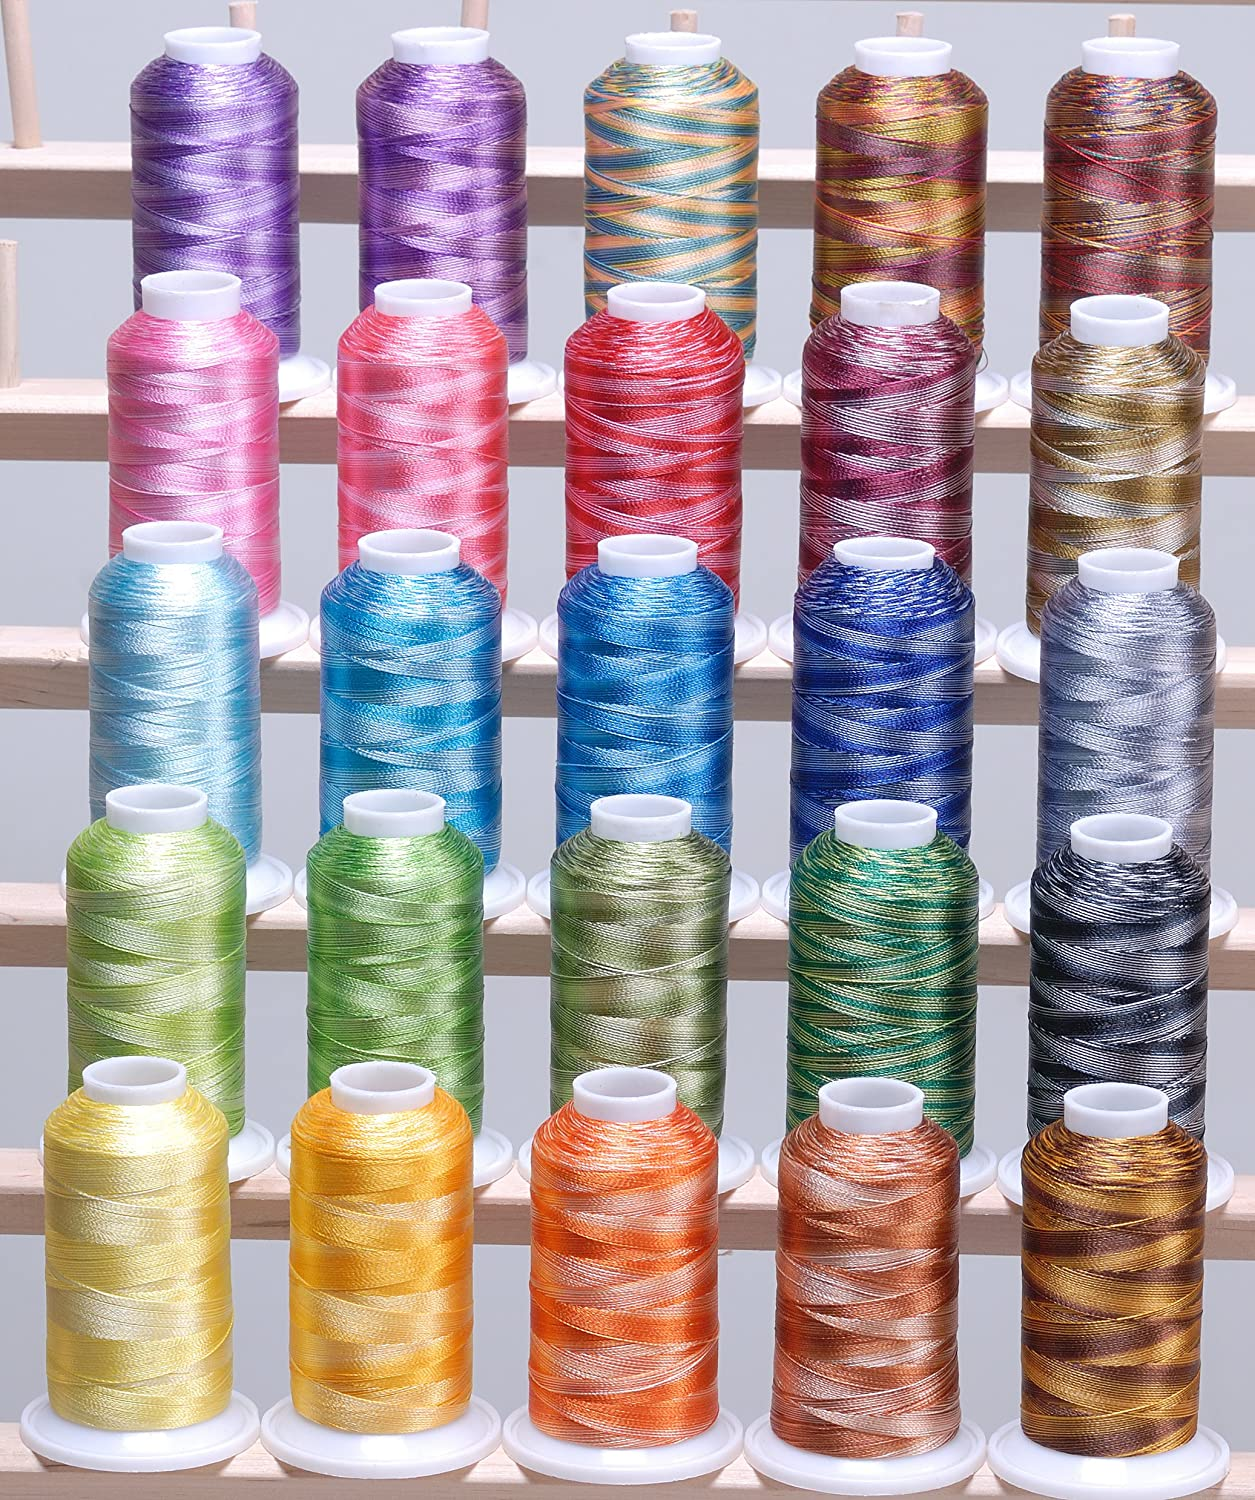 Amazon 25 large cones variegated embroidery machine thread amazon 25 large cones variegated embroidery machine thread 40wt 1100yards poly120d2 arts crafts sewing nvjuhfo Image collections